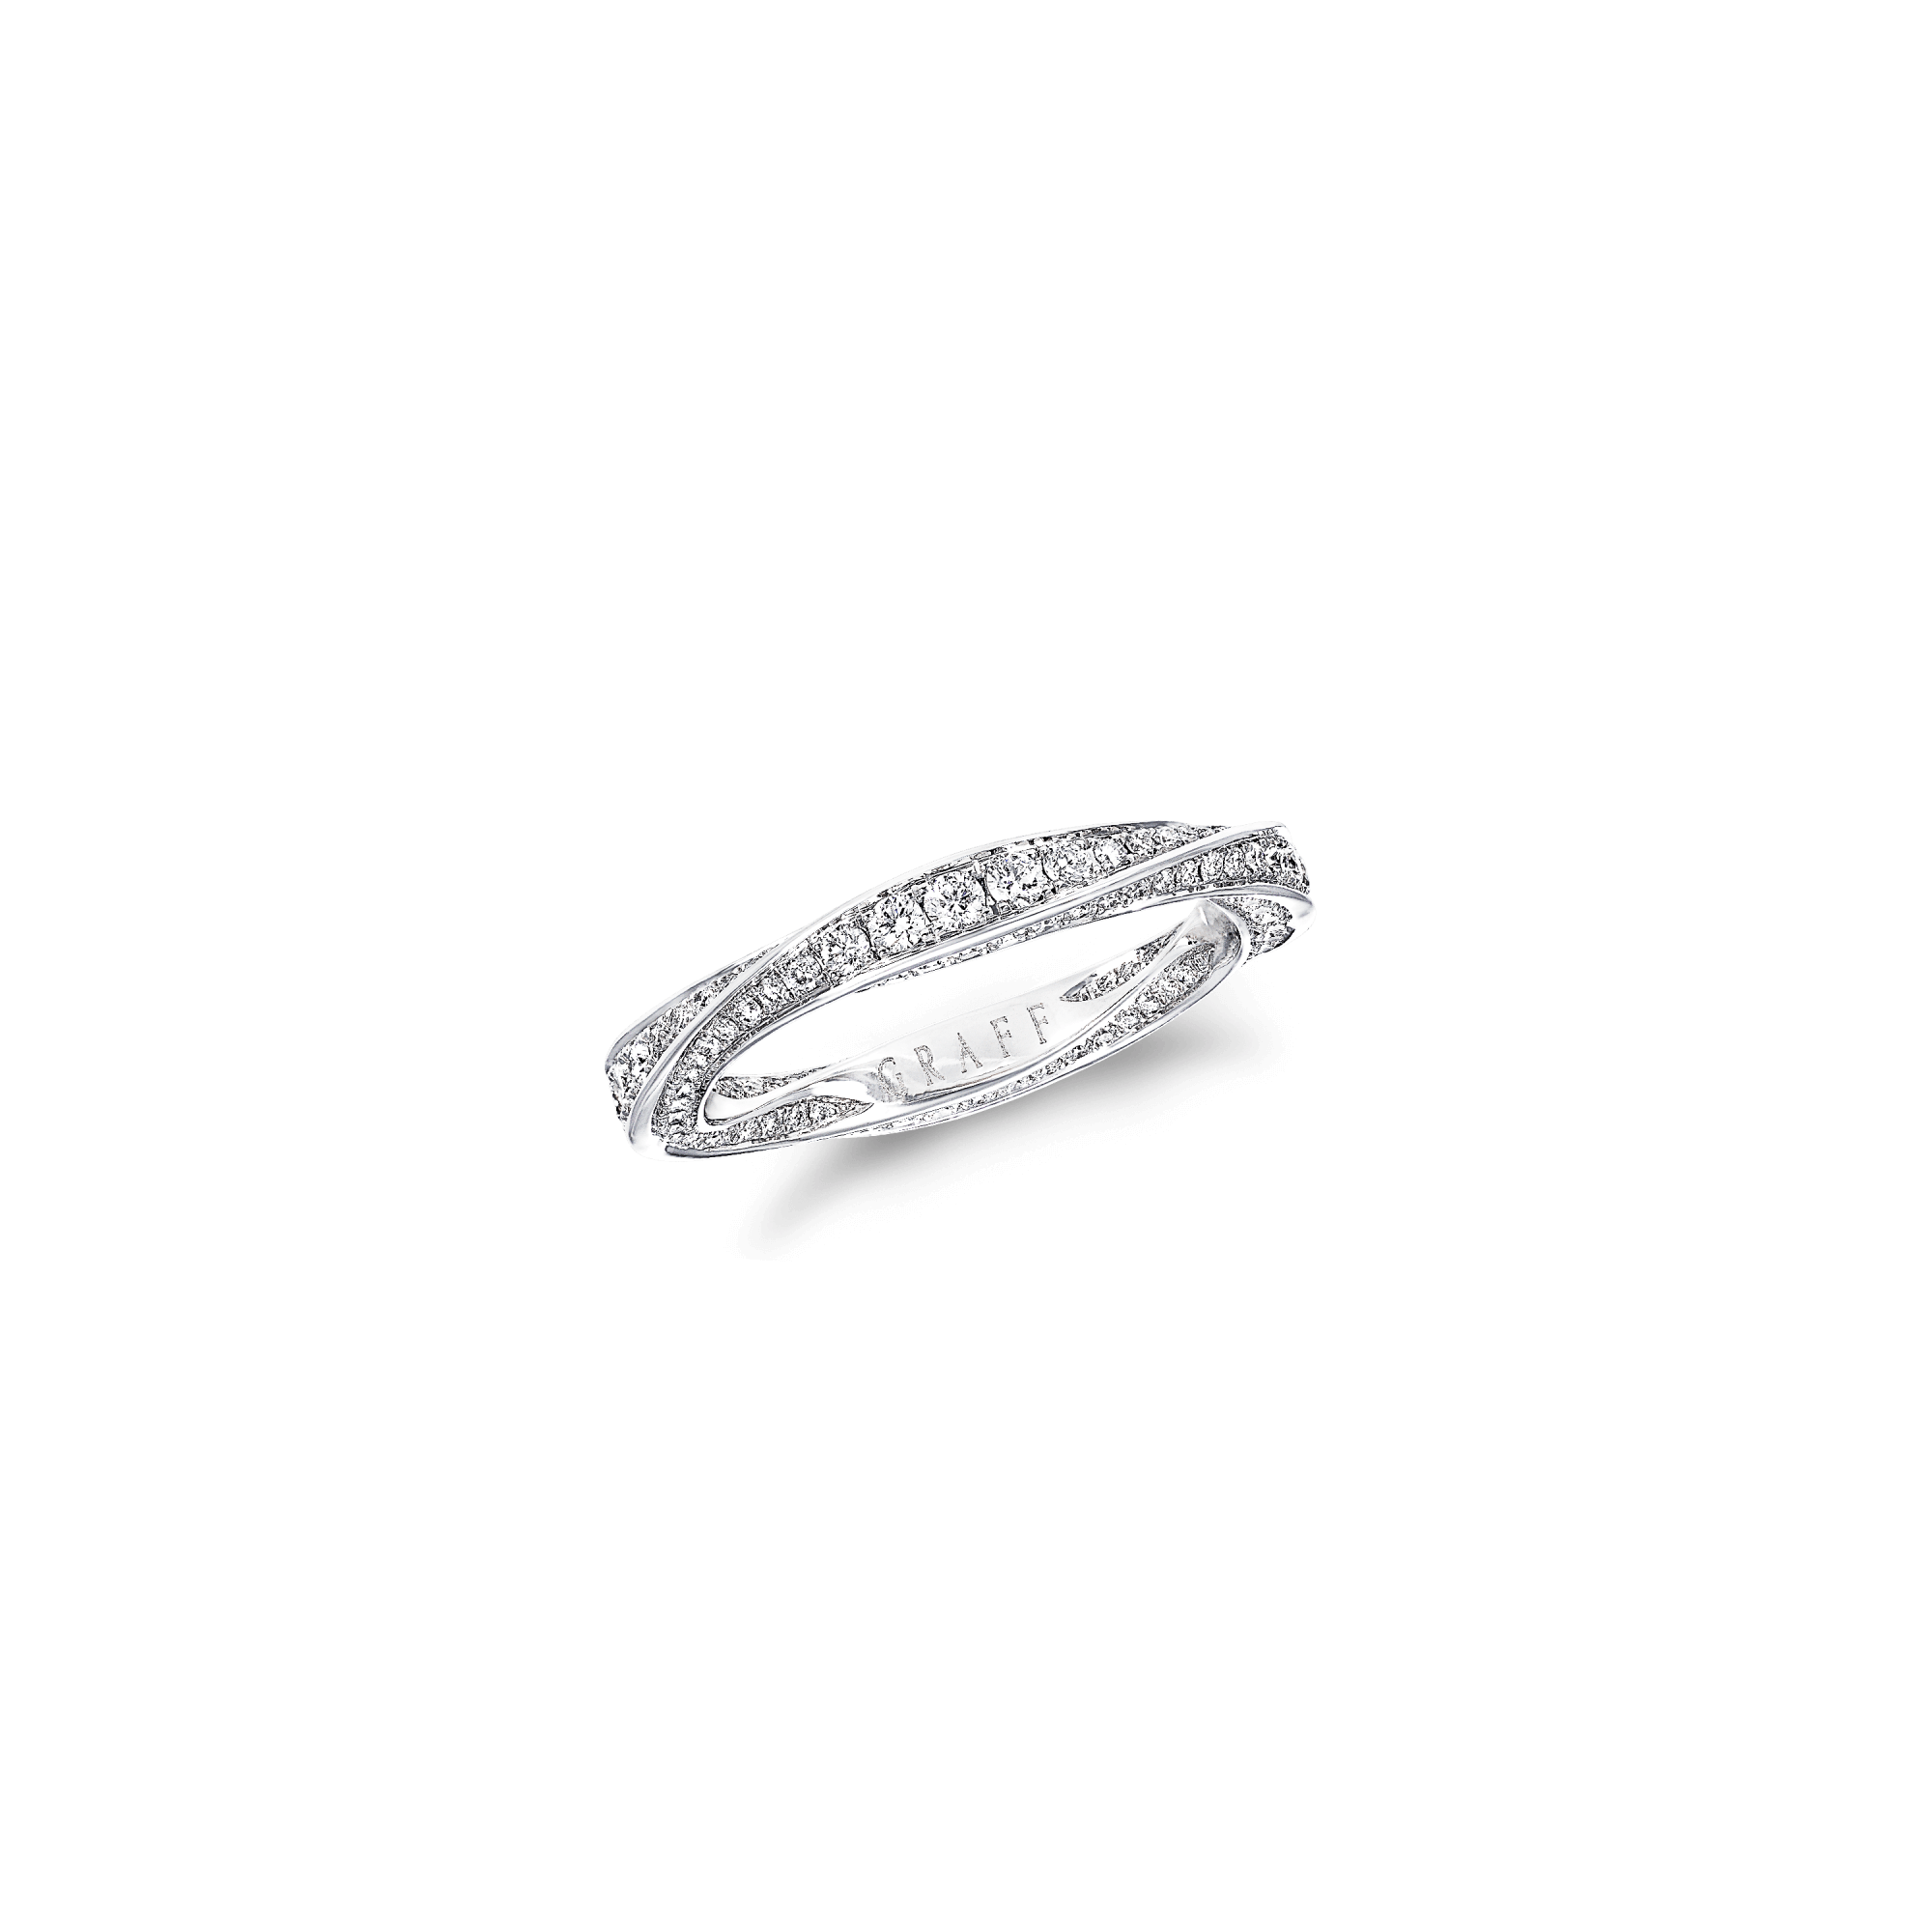 Diamond band png. Spiral white gold graff